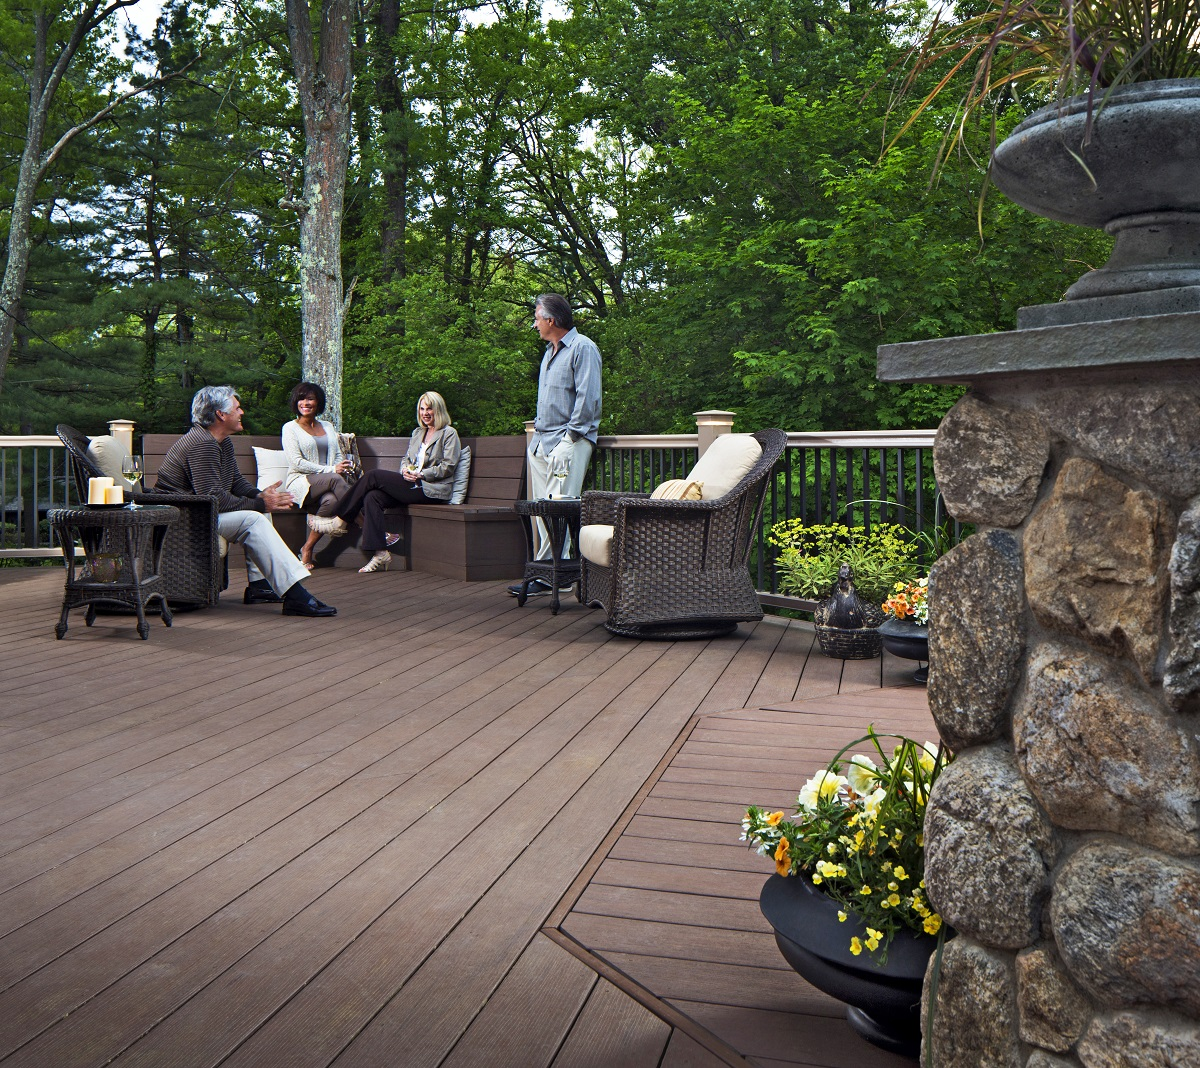 Outdoor patio deck with furniture